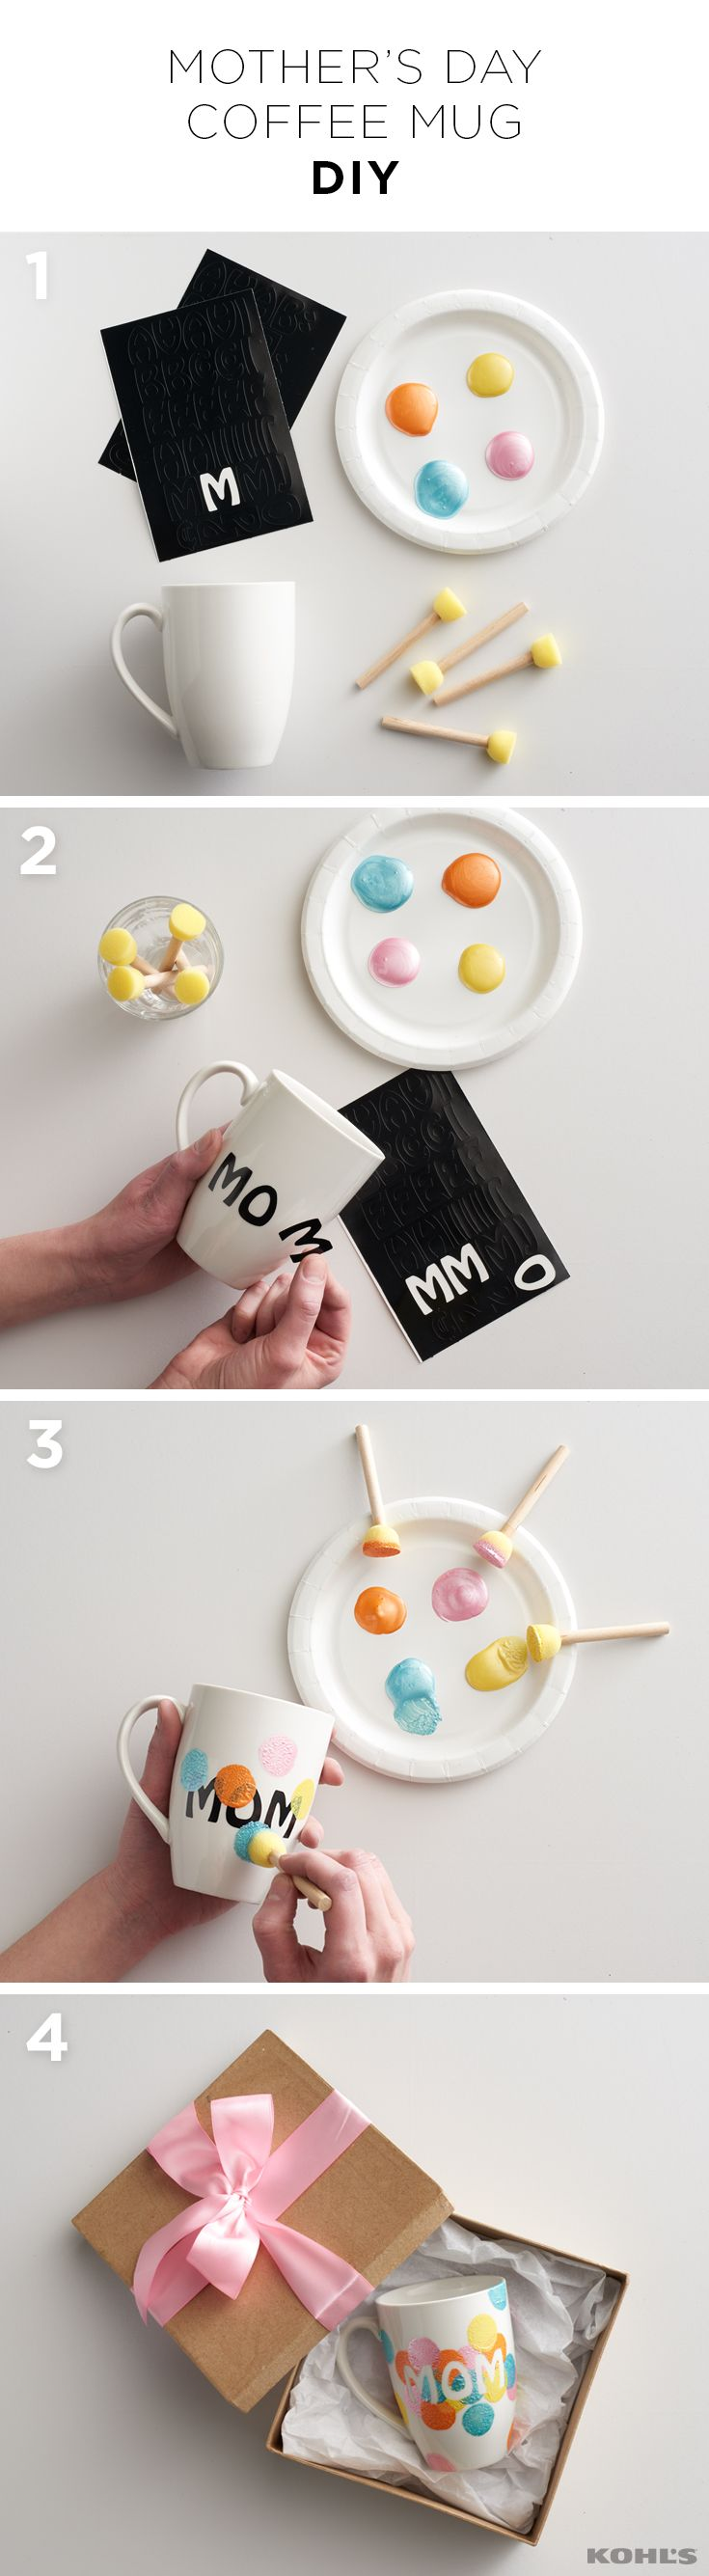 When two of your mom's greatest loves are you and her morning coffee, you make this DIY mug for Mother's Day. 1. Choose a few different shades of acrylic paint and gather letter stickers, sponge applicators and a clean, dry mug. 2. Apply the letters to spell out MOM. 3. Dip the sponge applicators in the paint and add dots around the mug. 4. Peel off the letter stickers while the paint is still wet and allow to dry. Celebrate Mother's Day with Kohl's.